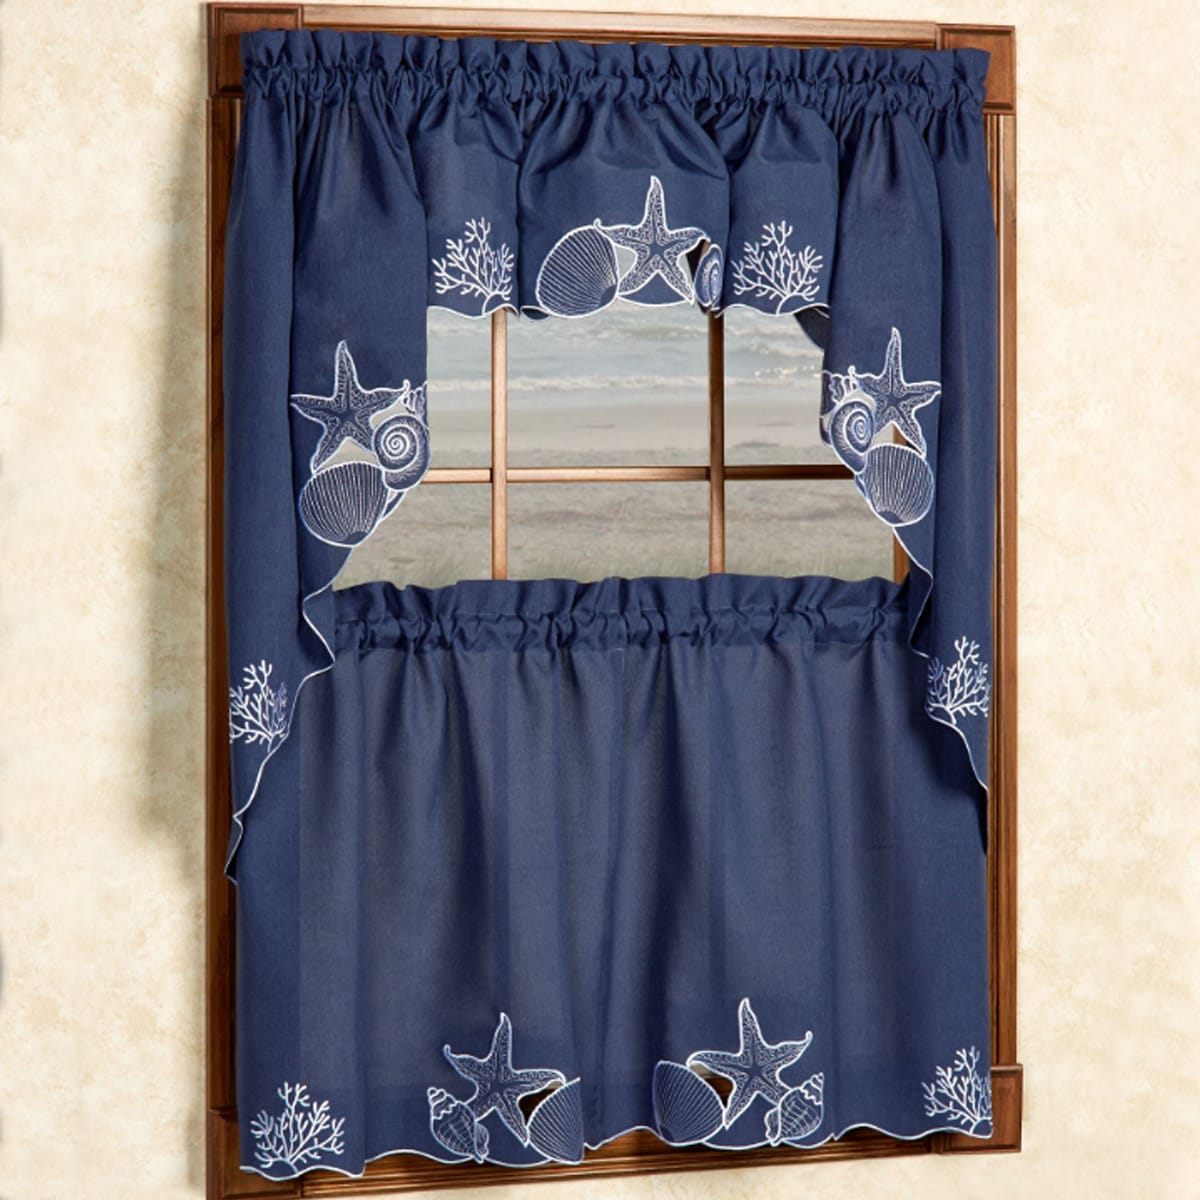 Embroidered Shells Coral and Sea Life Window Curtain Piec...